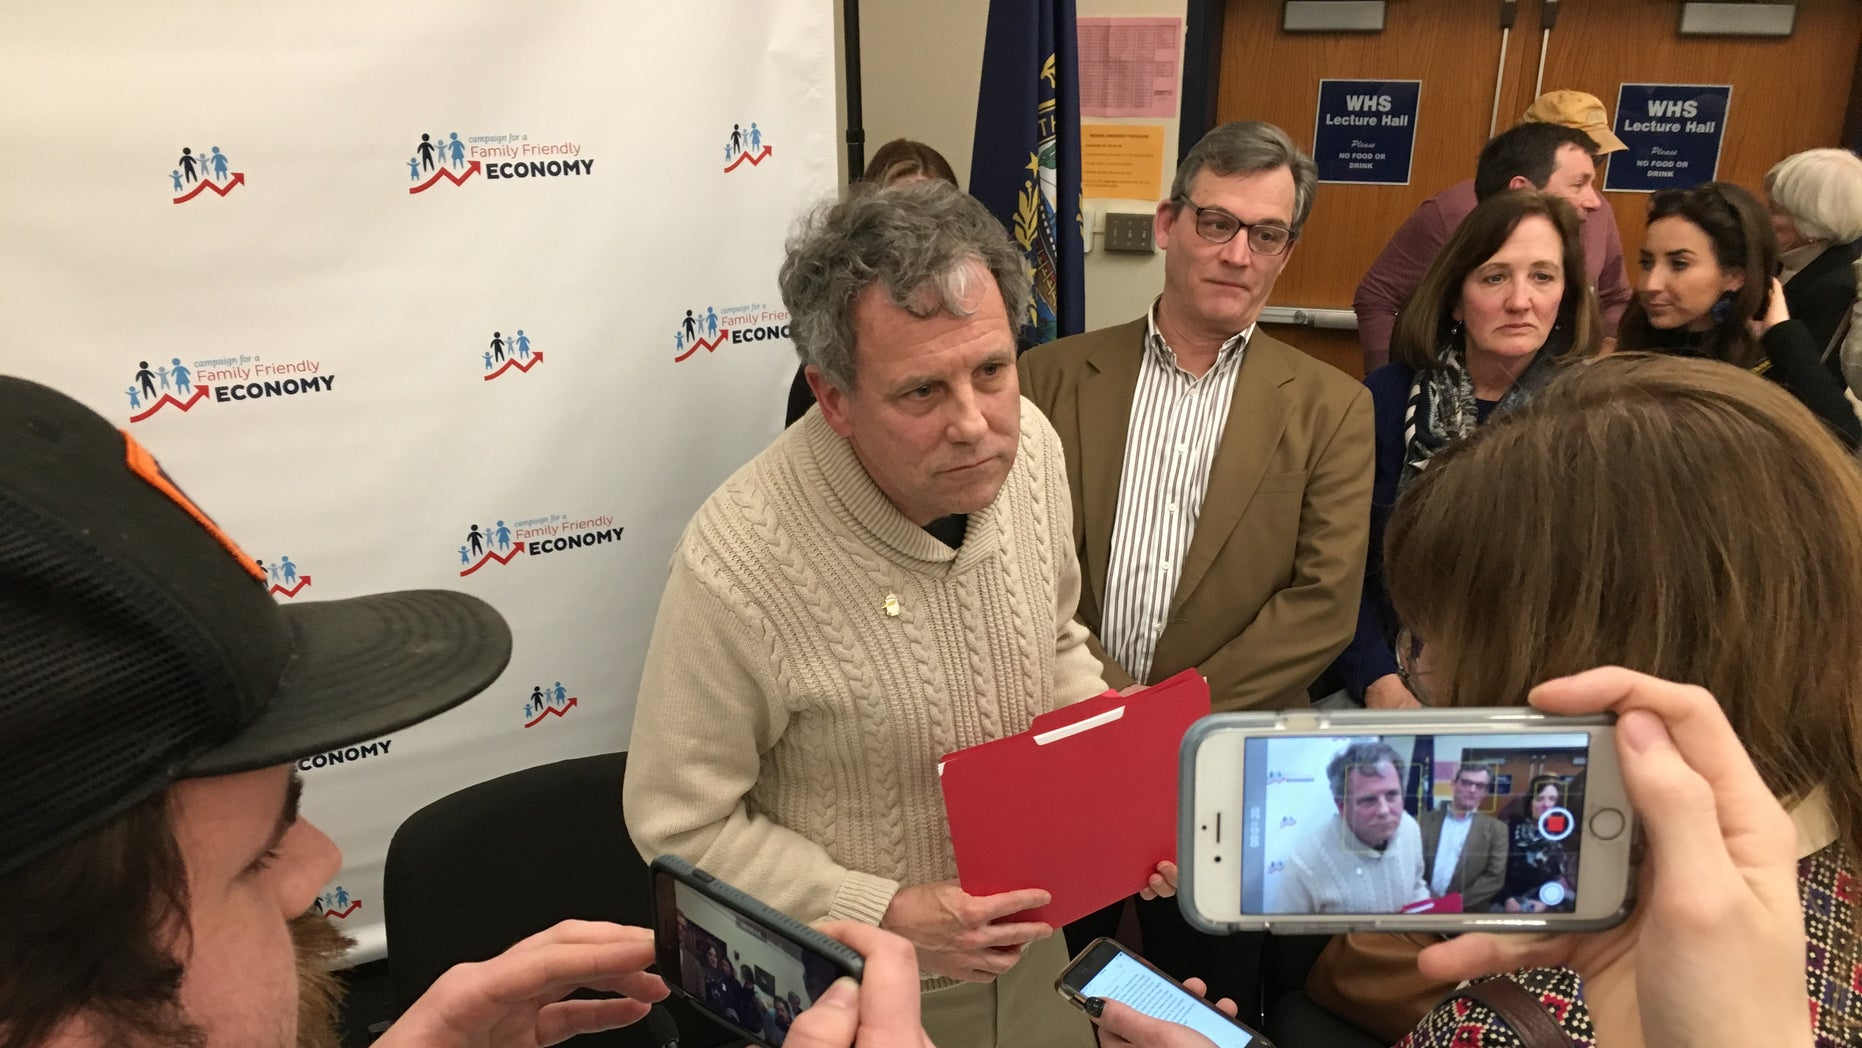 Sherrod Brown in New Hampshire on Friday. (Paul Steinhauser)